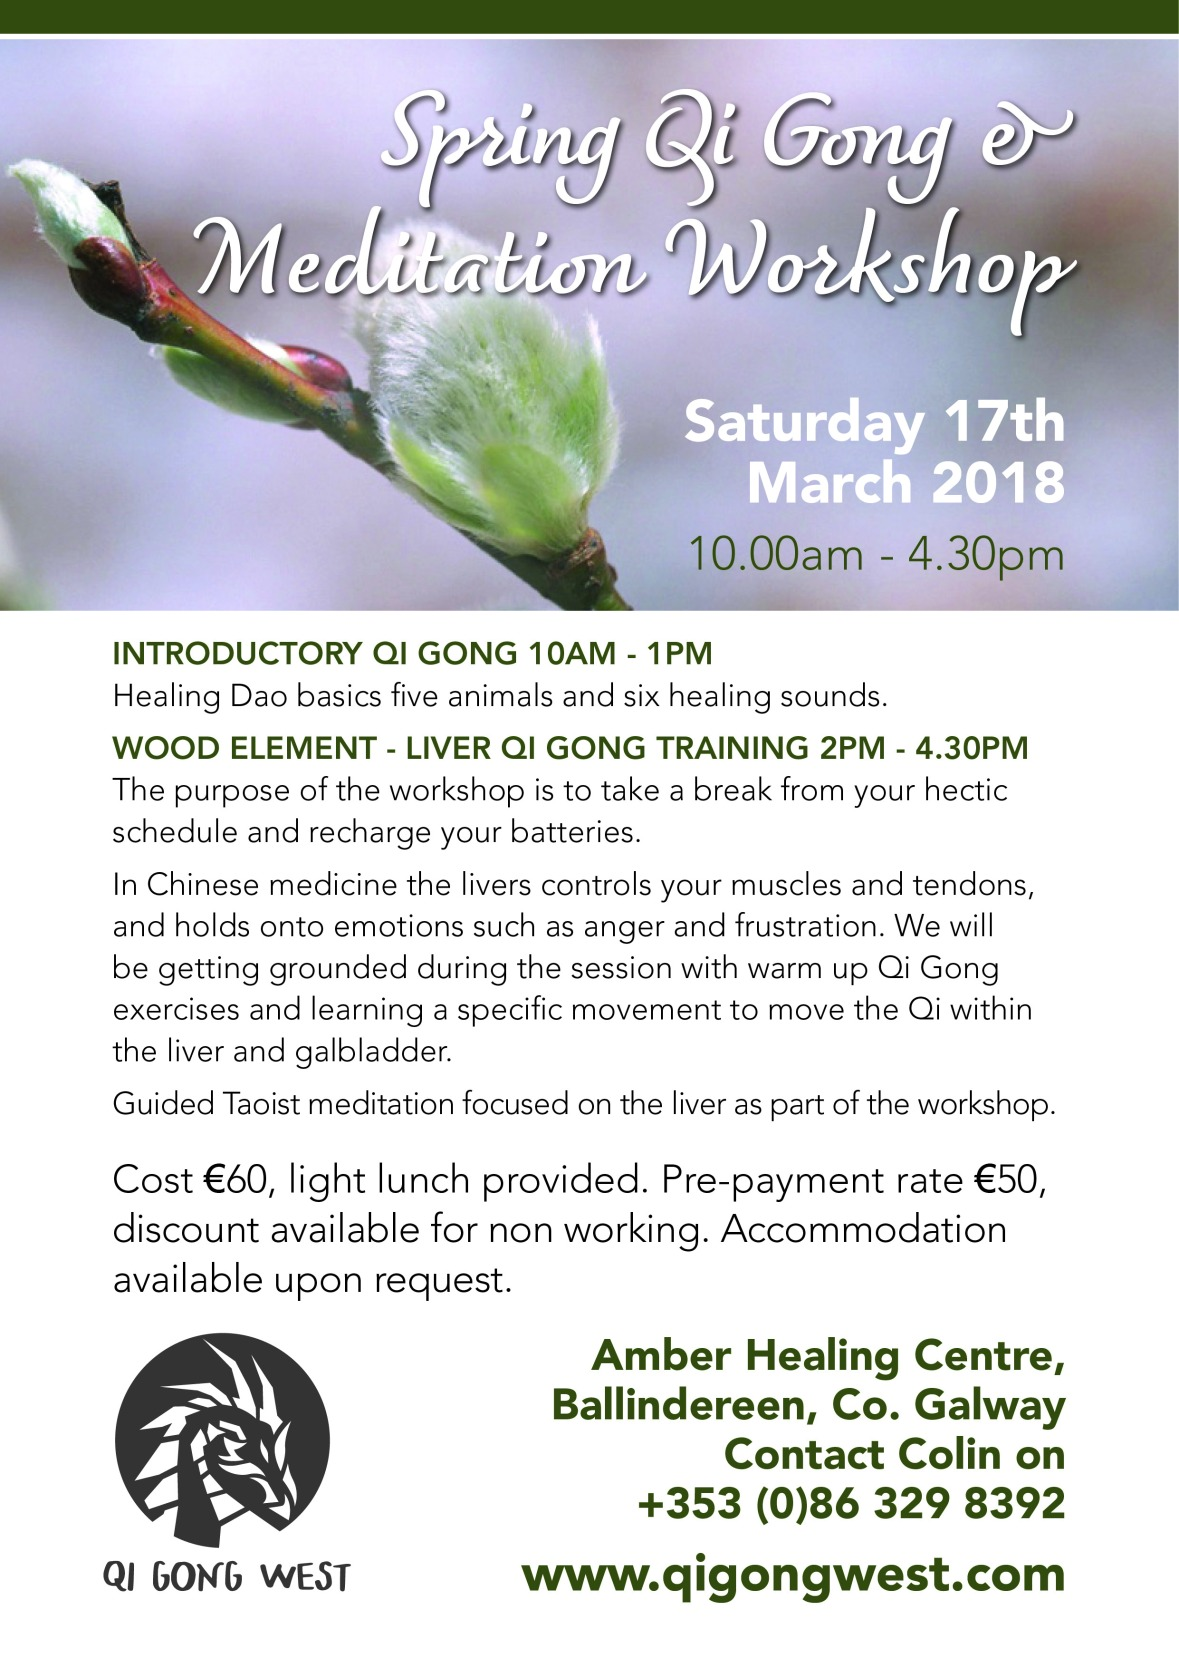 SpringMeditationWorkshop